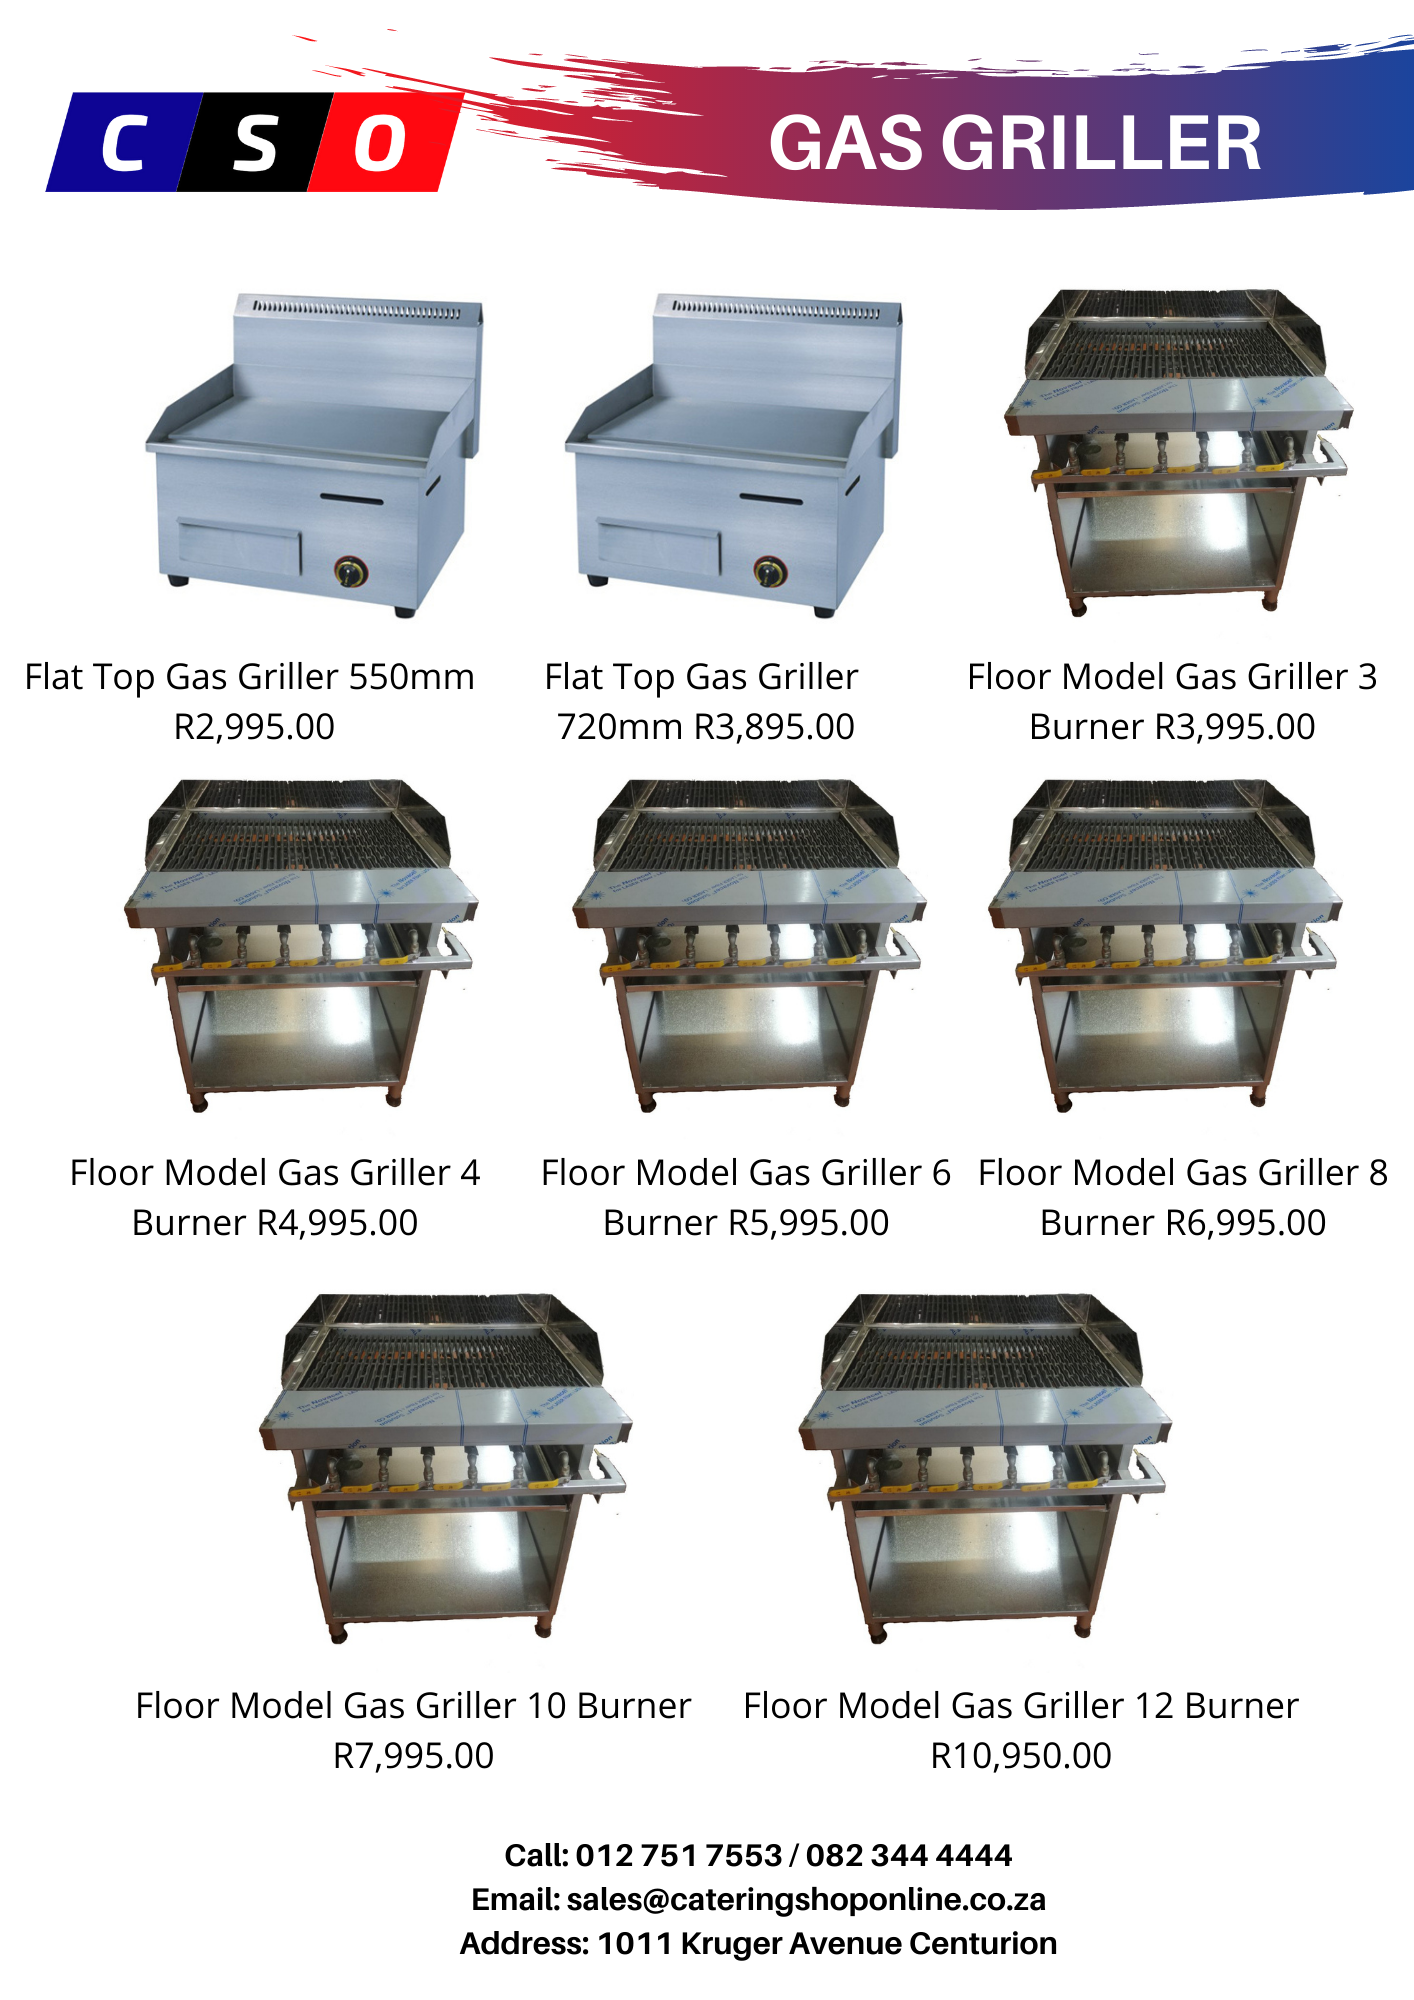 Flat Top Gas Grillers For Sale